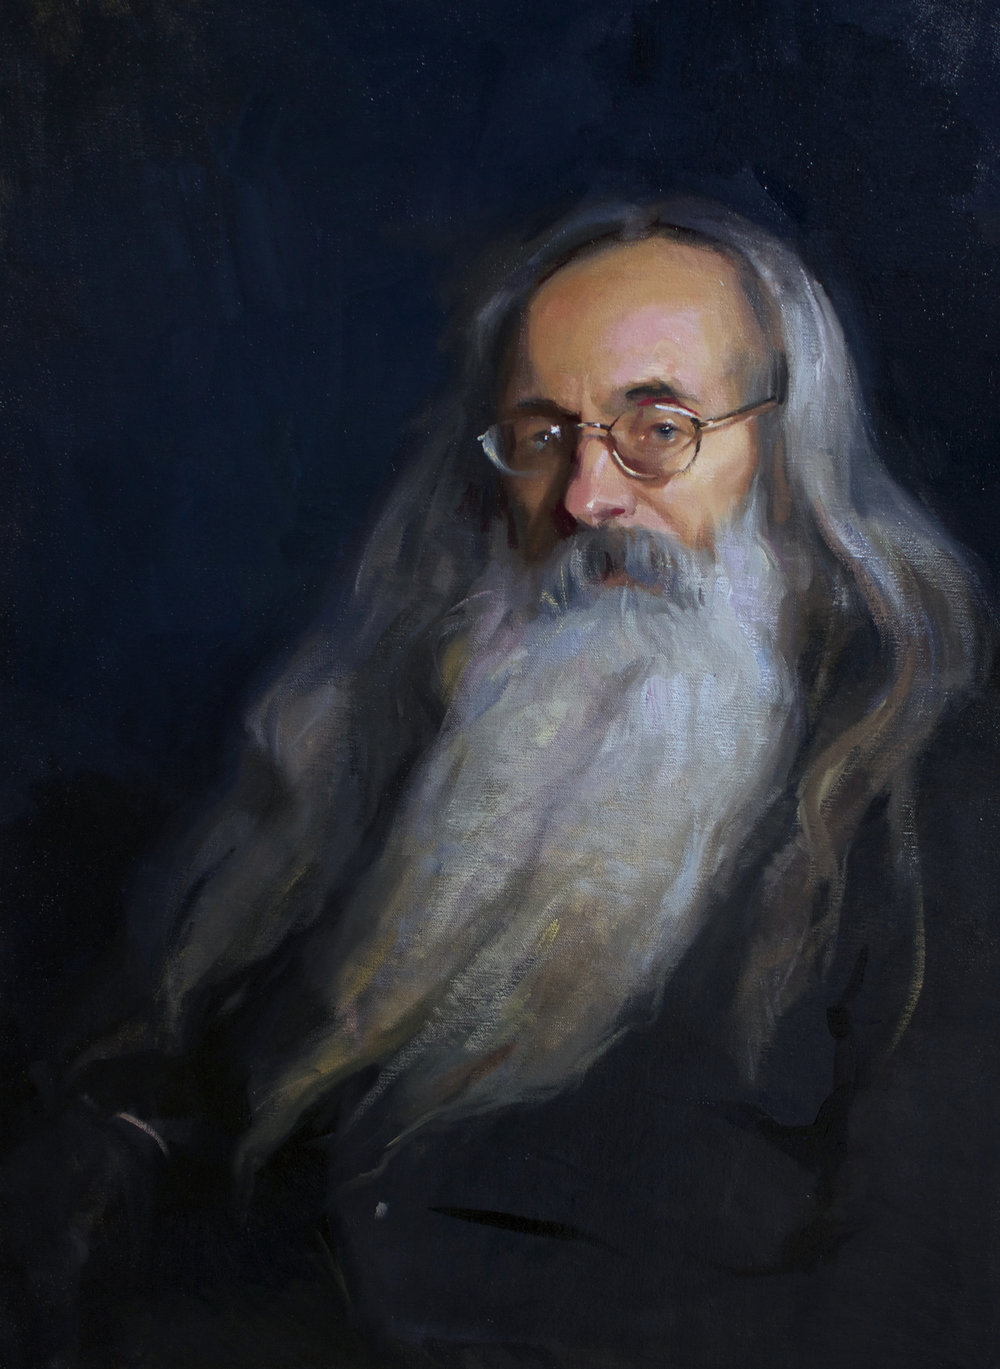 'Carlo' 80 cm by 60 cm Oil on linen